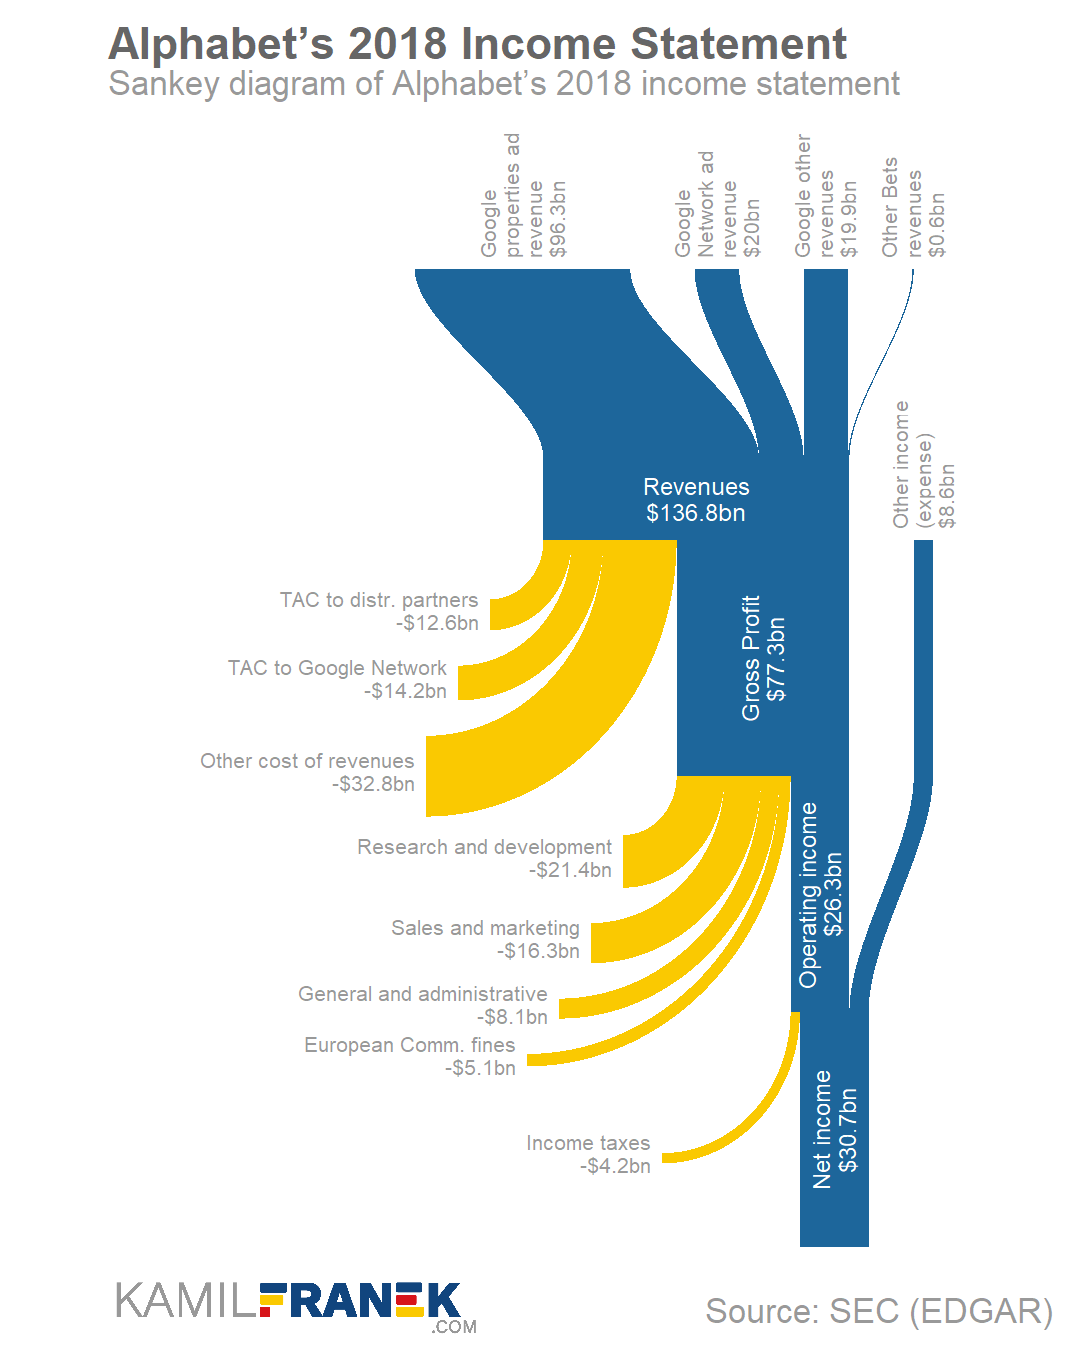 Example of detailed income statement Sankey diagram visualization